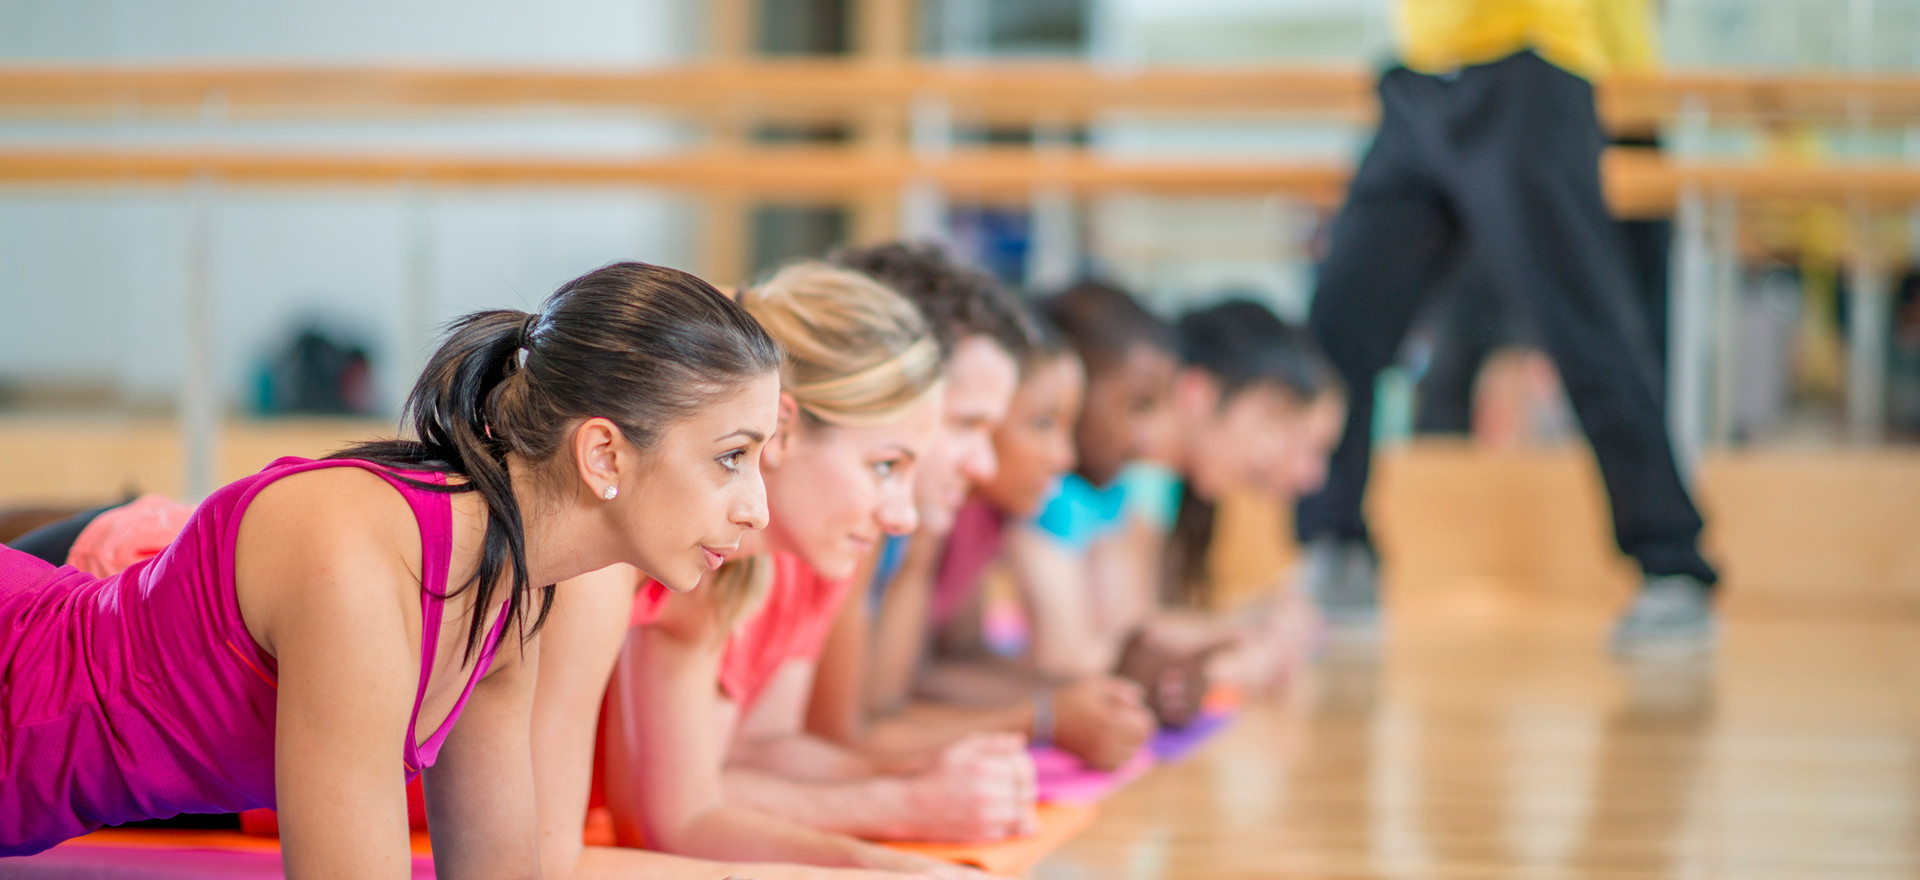 Join our Fitness Classes